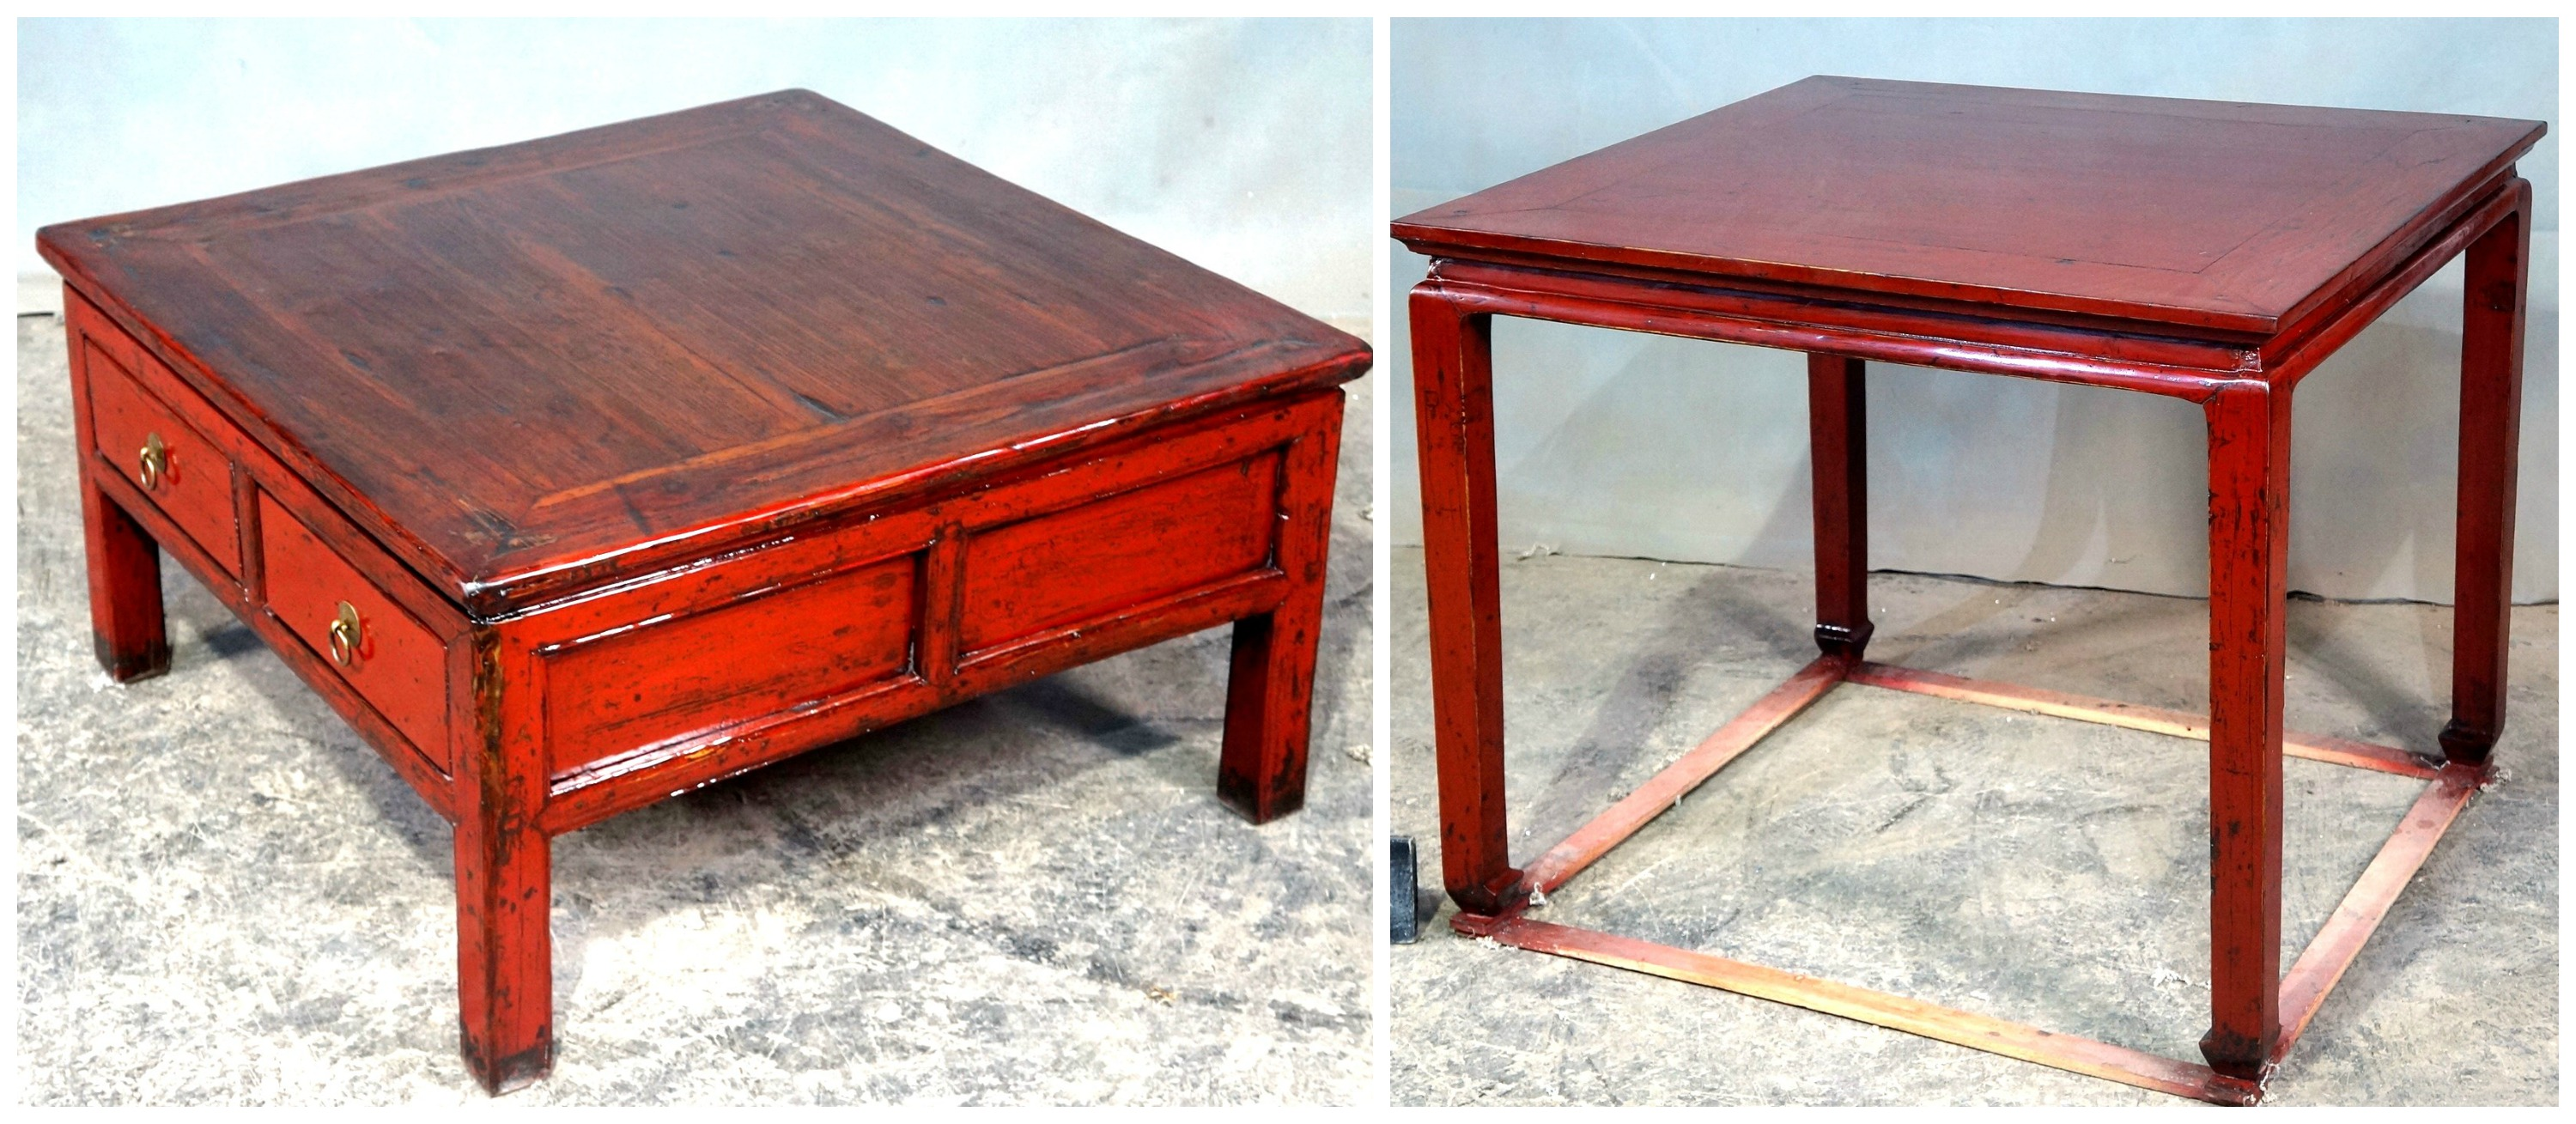 Arrivage de mobilier chinois ancien d cembre 2014 blog for Table chinoise ancienne